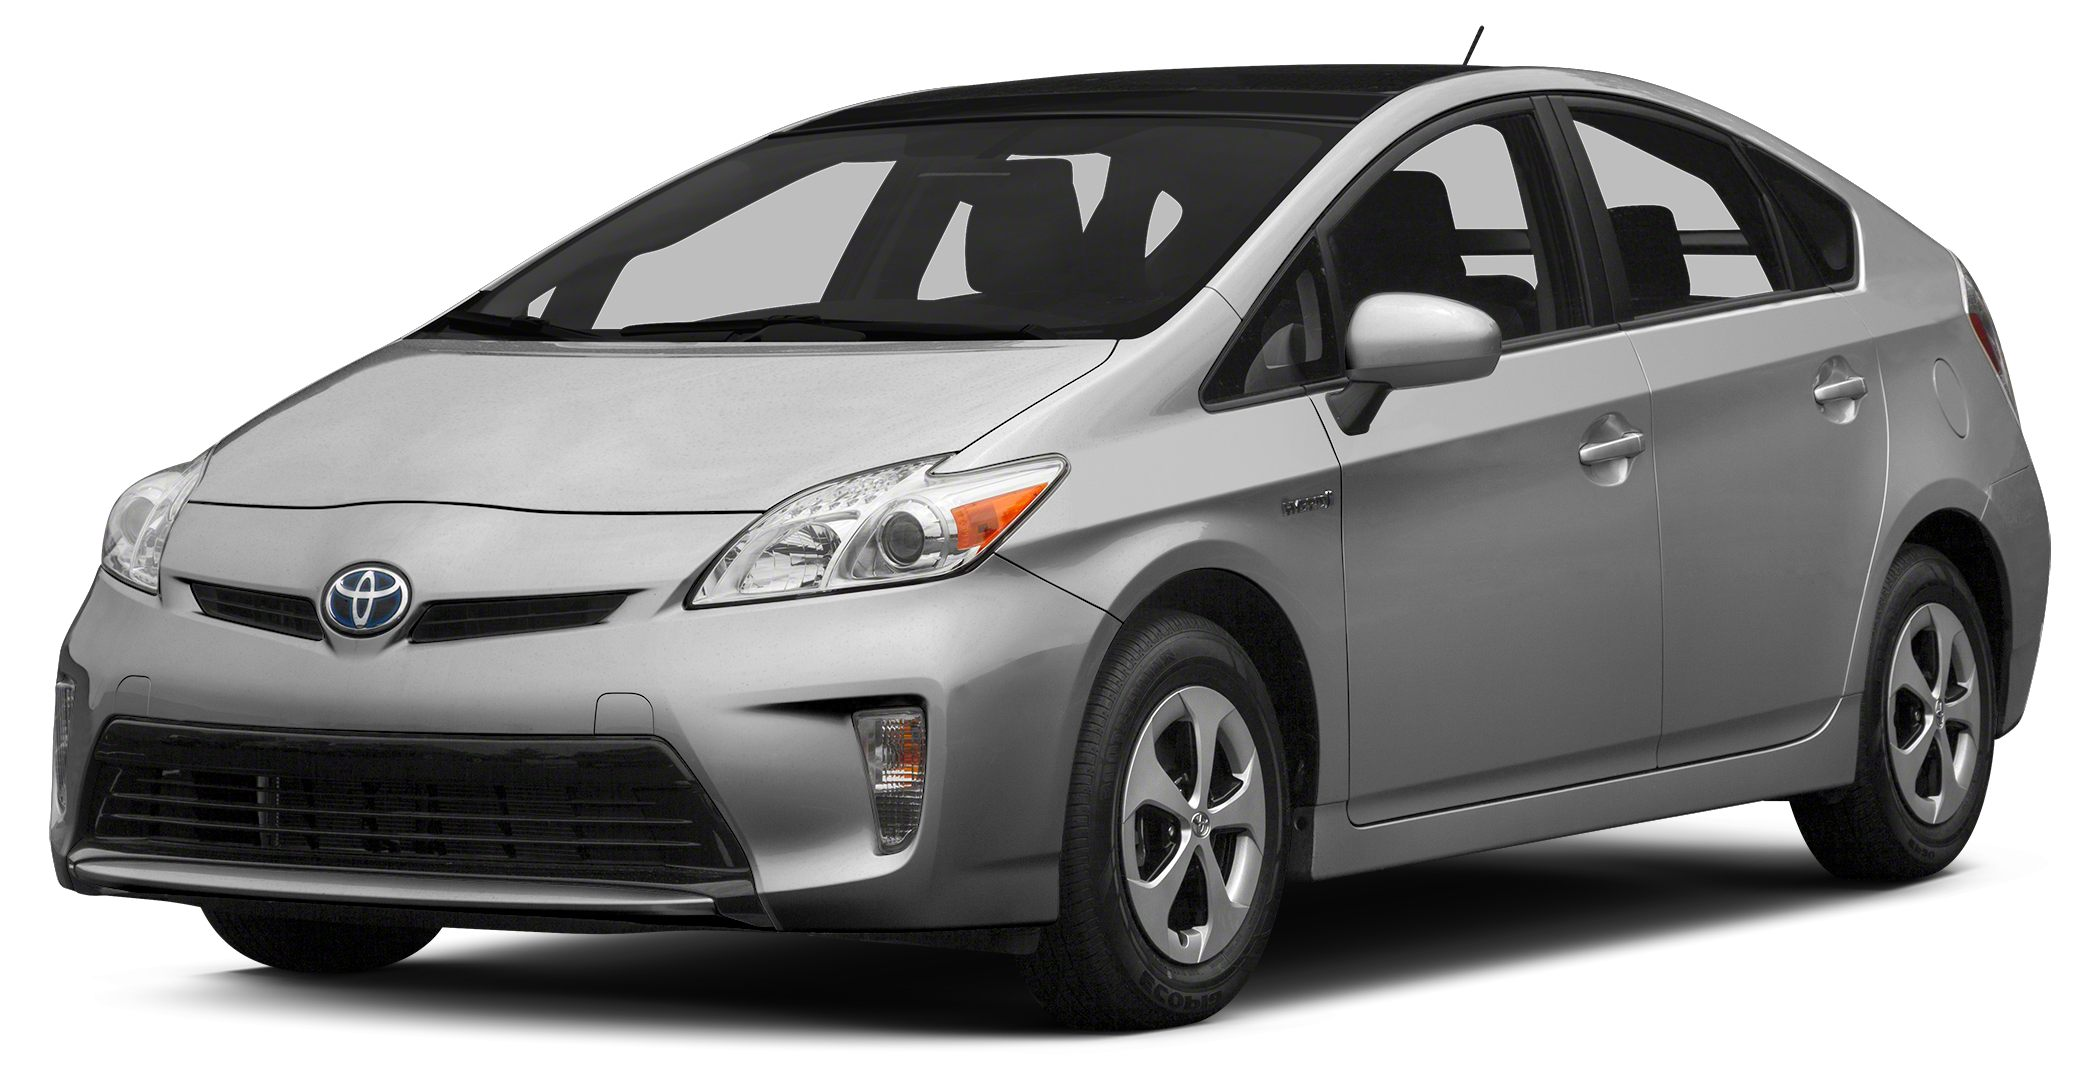 2012 Toyota Prius Three GREAT MILES 32963 EPA 48 MPG Hwy51 MPG City Navigation Sunroof iPod